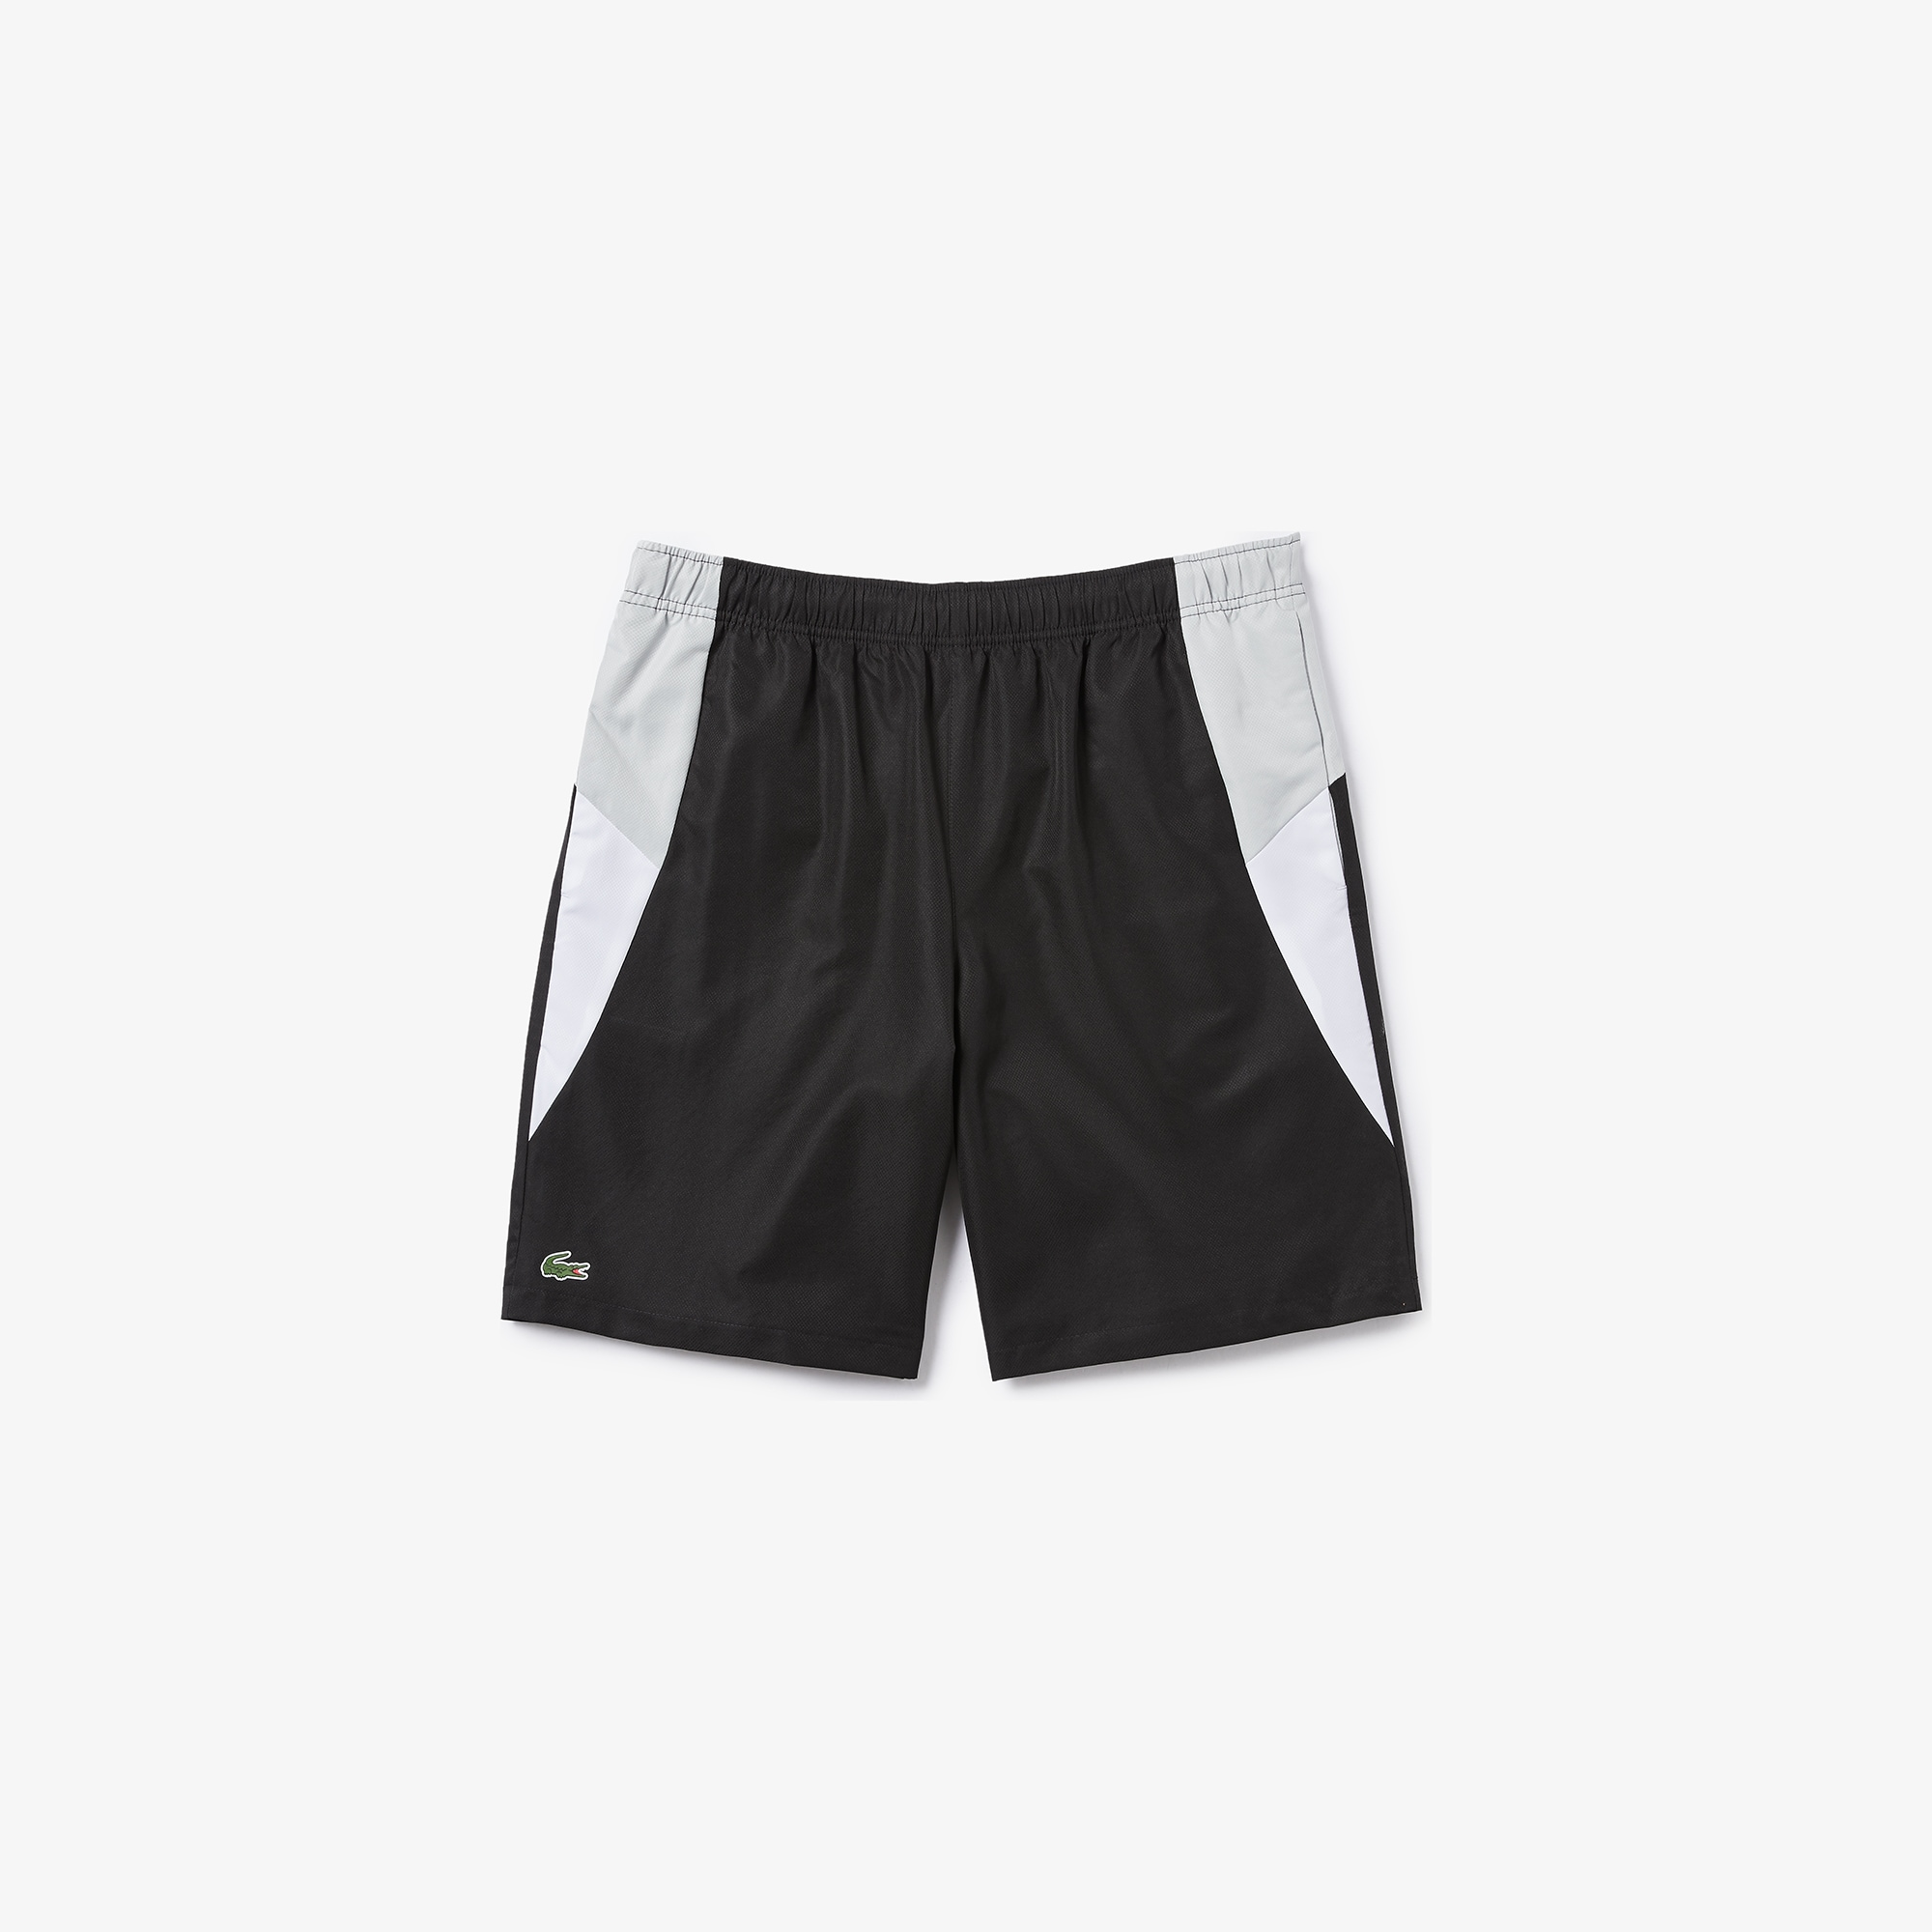 Men's Lacoste SPORT Colourblock Cut-Out Tennis Shorts